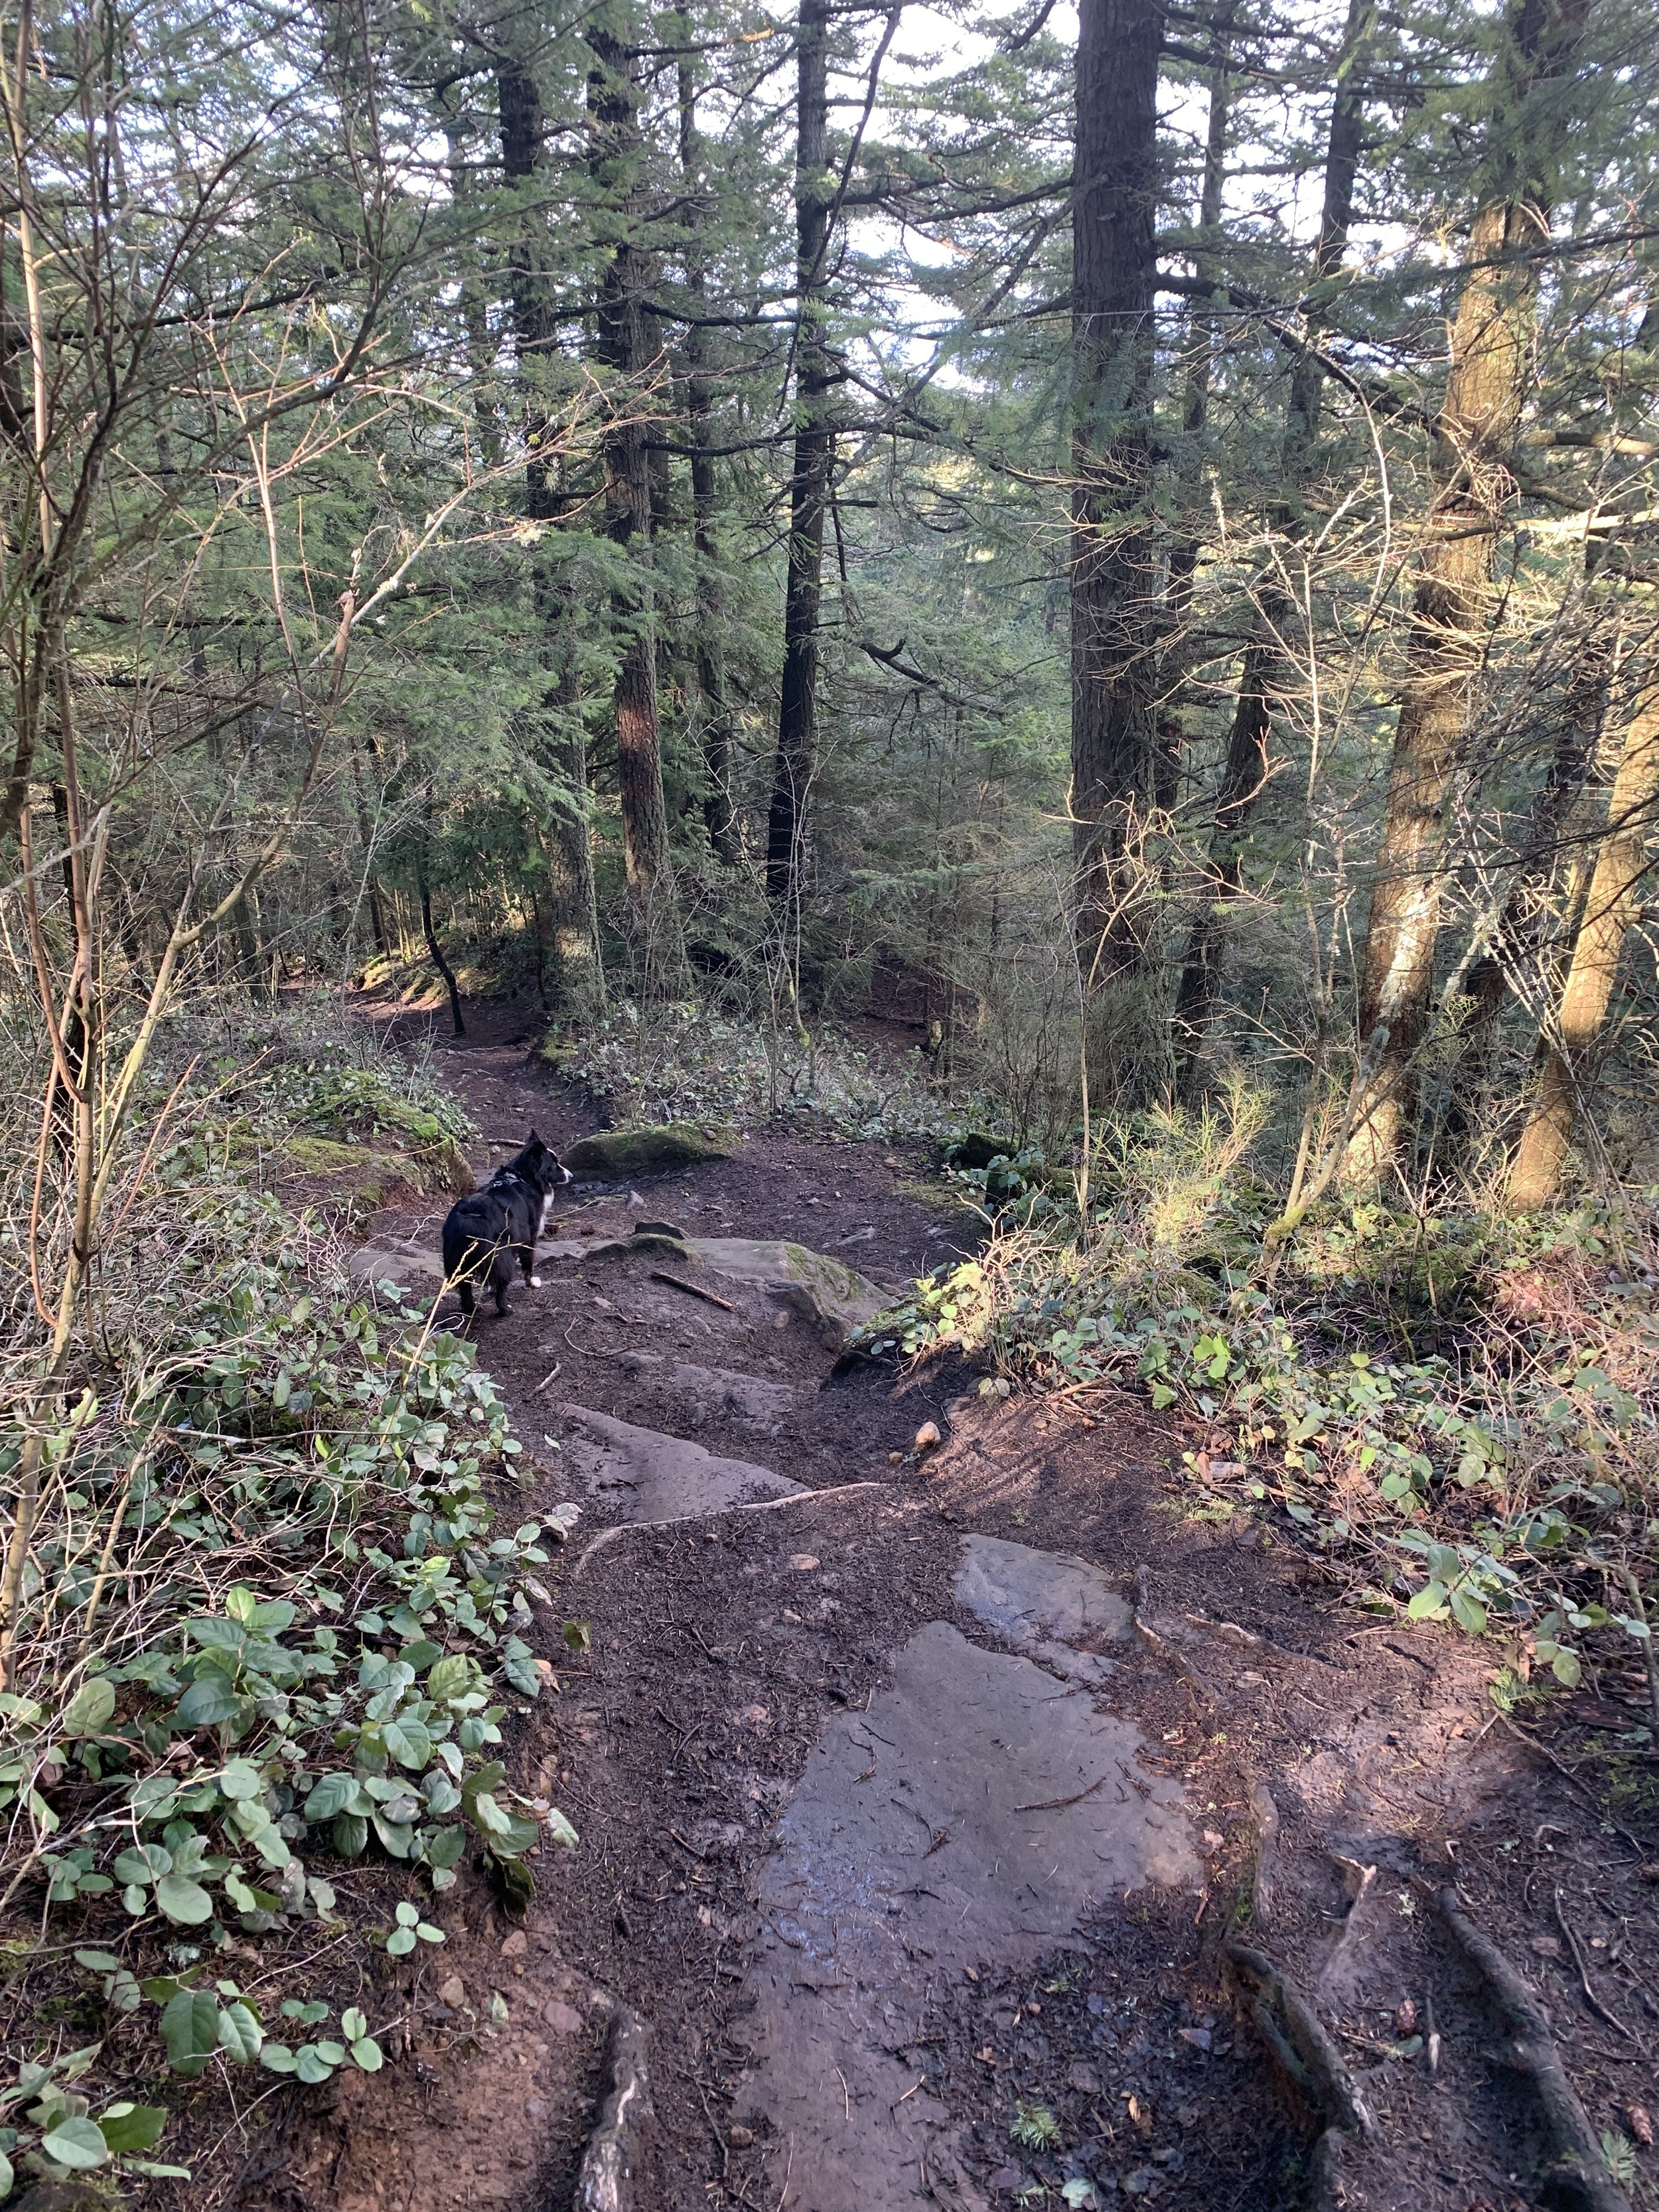 Once you get past the connector to Lower Ridge Trail, the North end of the Ridge starts to clear up.